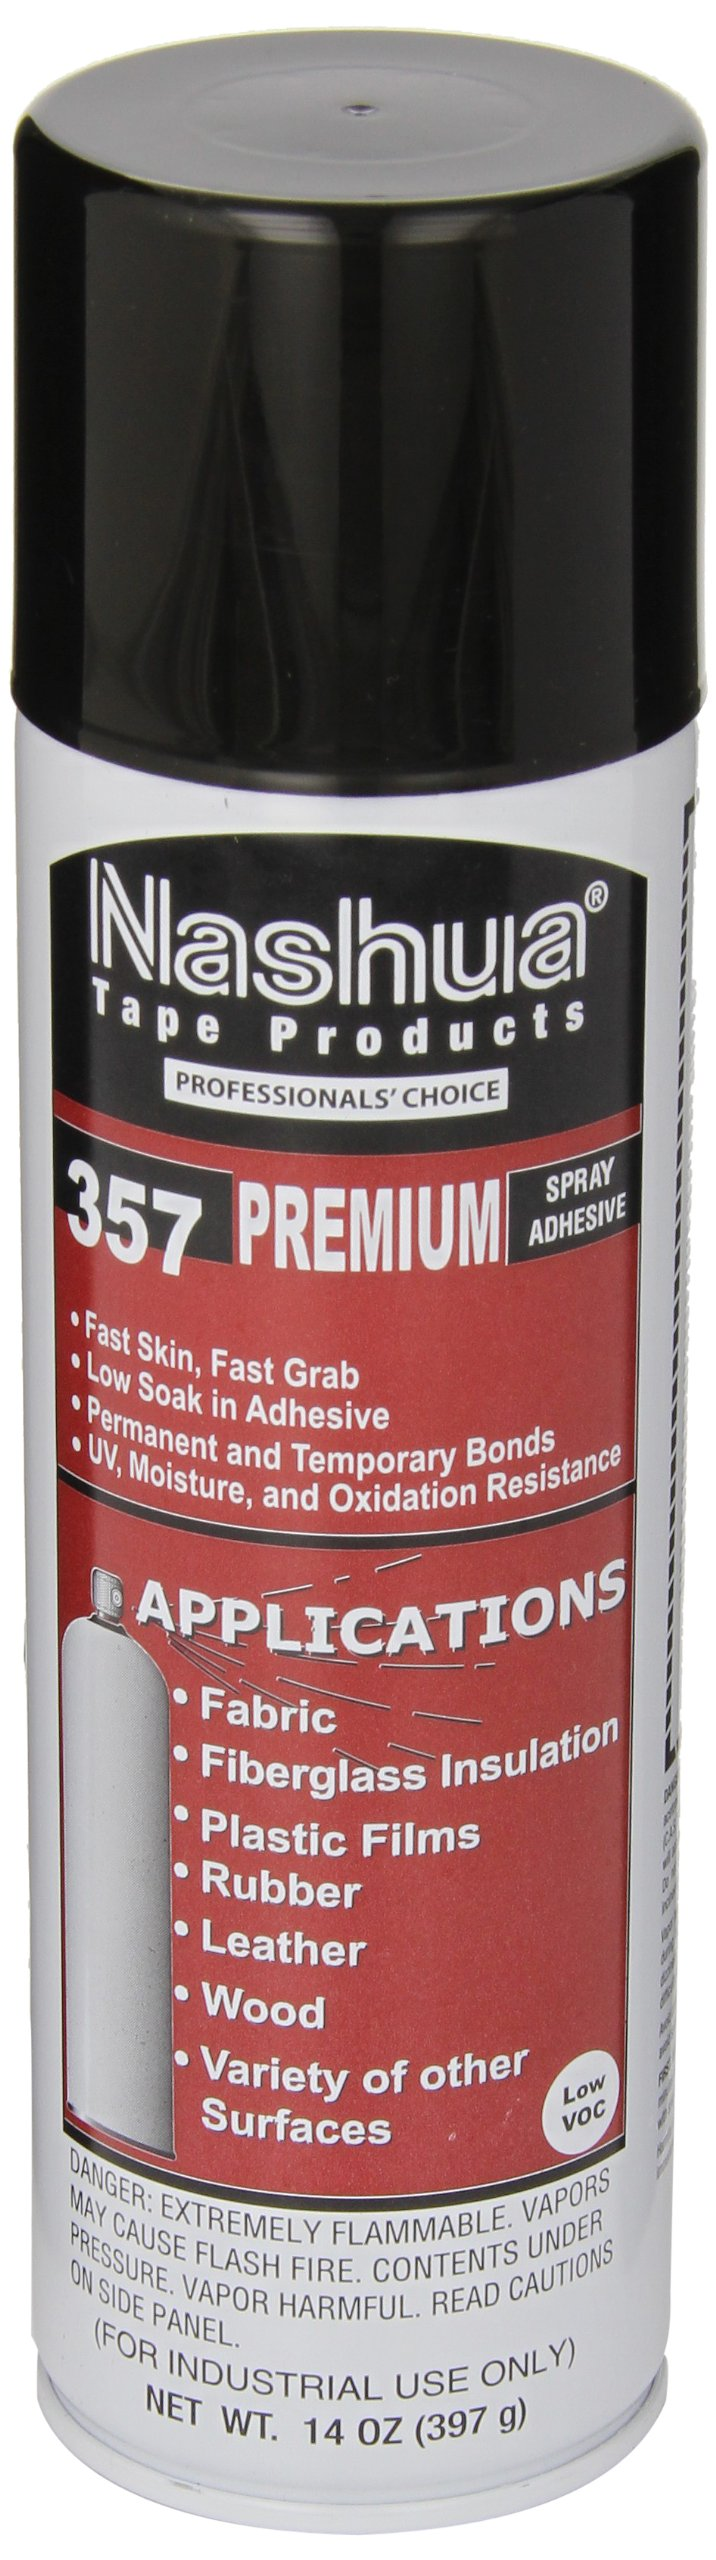 Nashua Low VOC Premium Spray Adhesive, 14